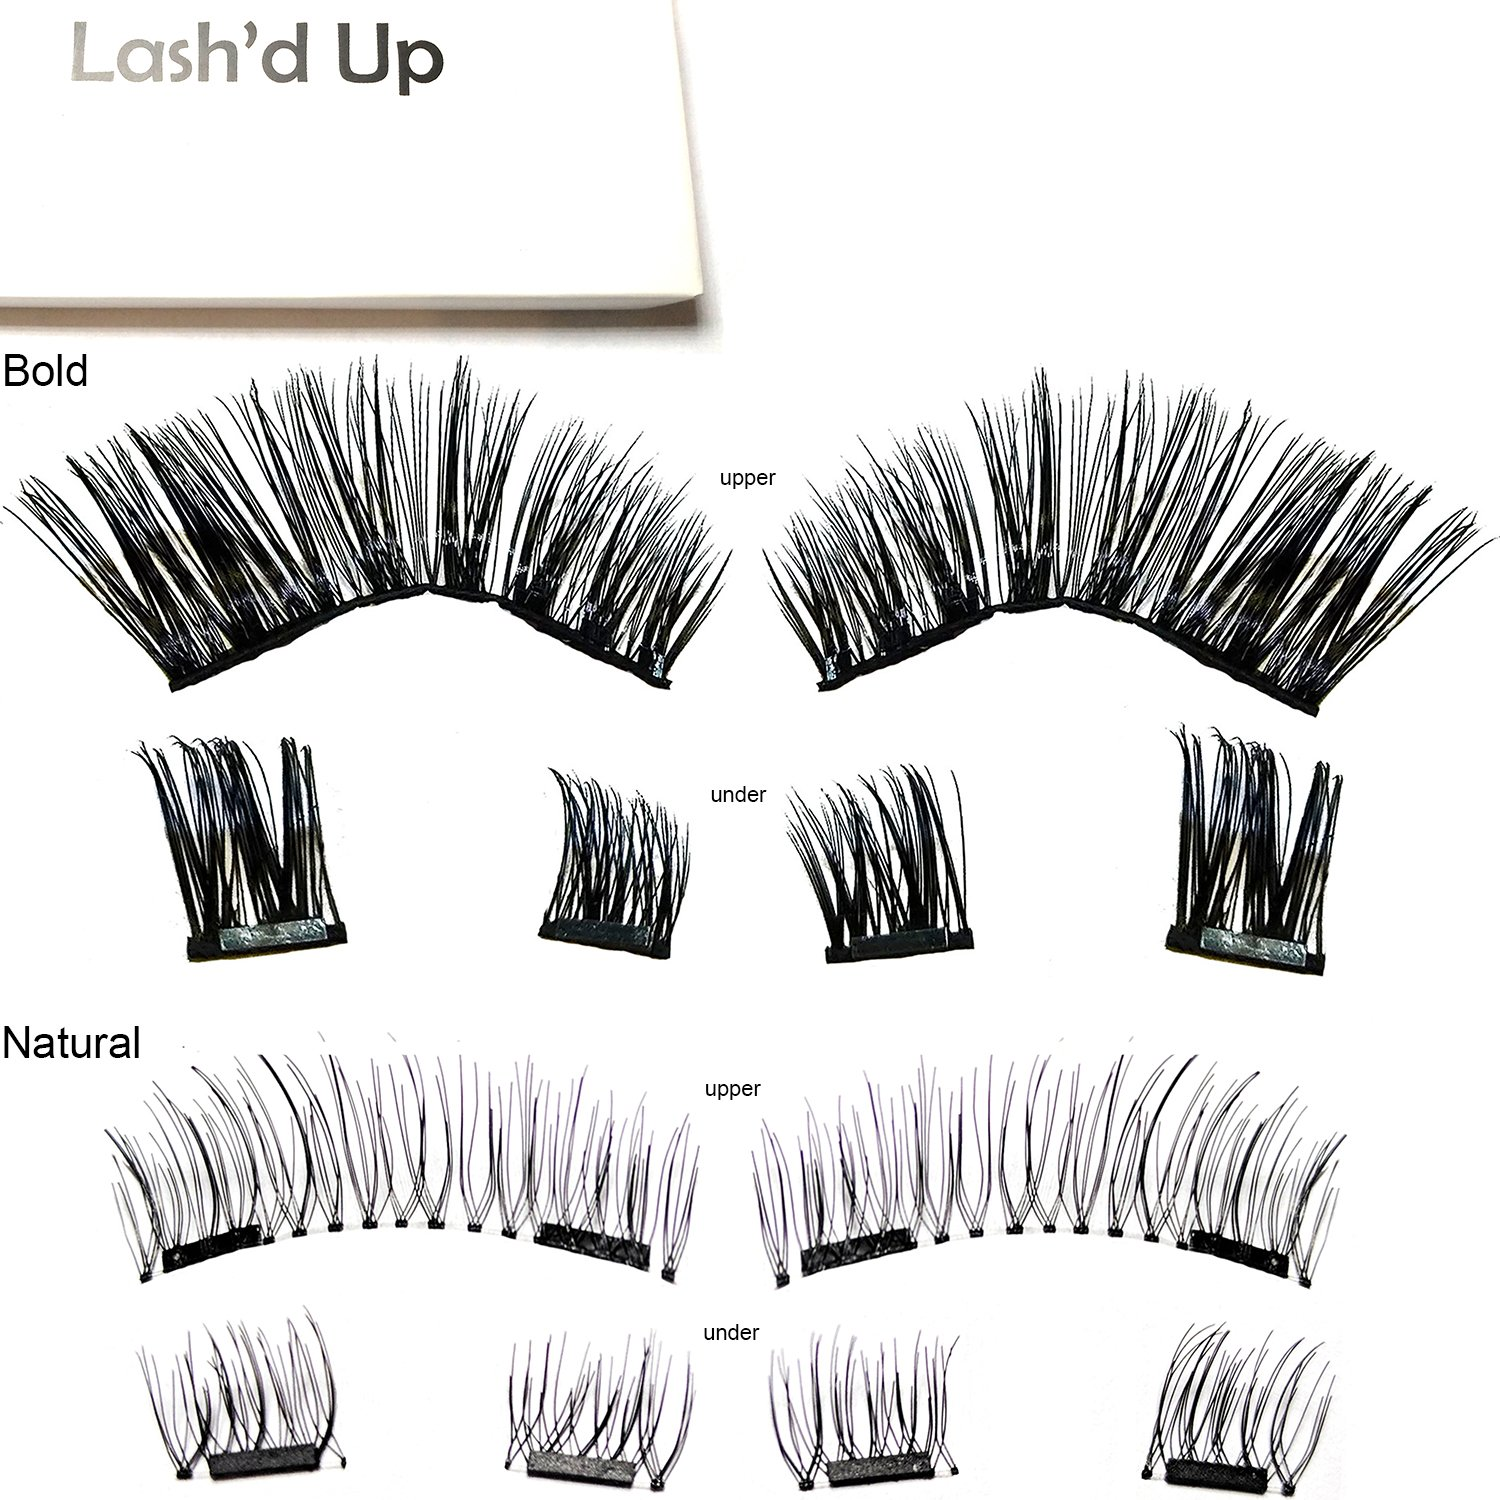 [2-Pack Natural & Bold] Lash'd Up Magnetic Eyelashes Full Eyes Premium Silk [No Glue] Child Cancer Partner Better Than 3 Magnets Reusable False Lashes | undress me & i woke up this way